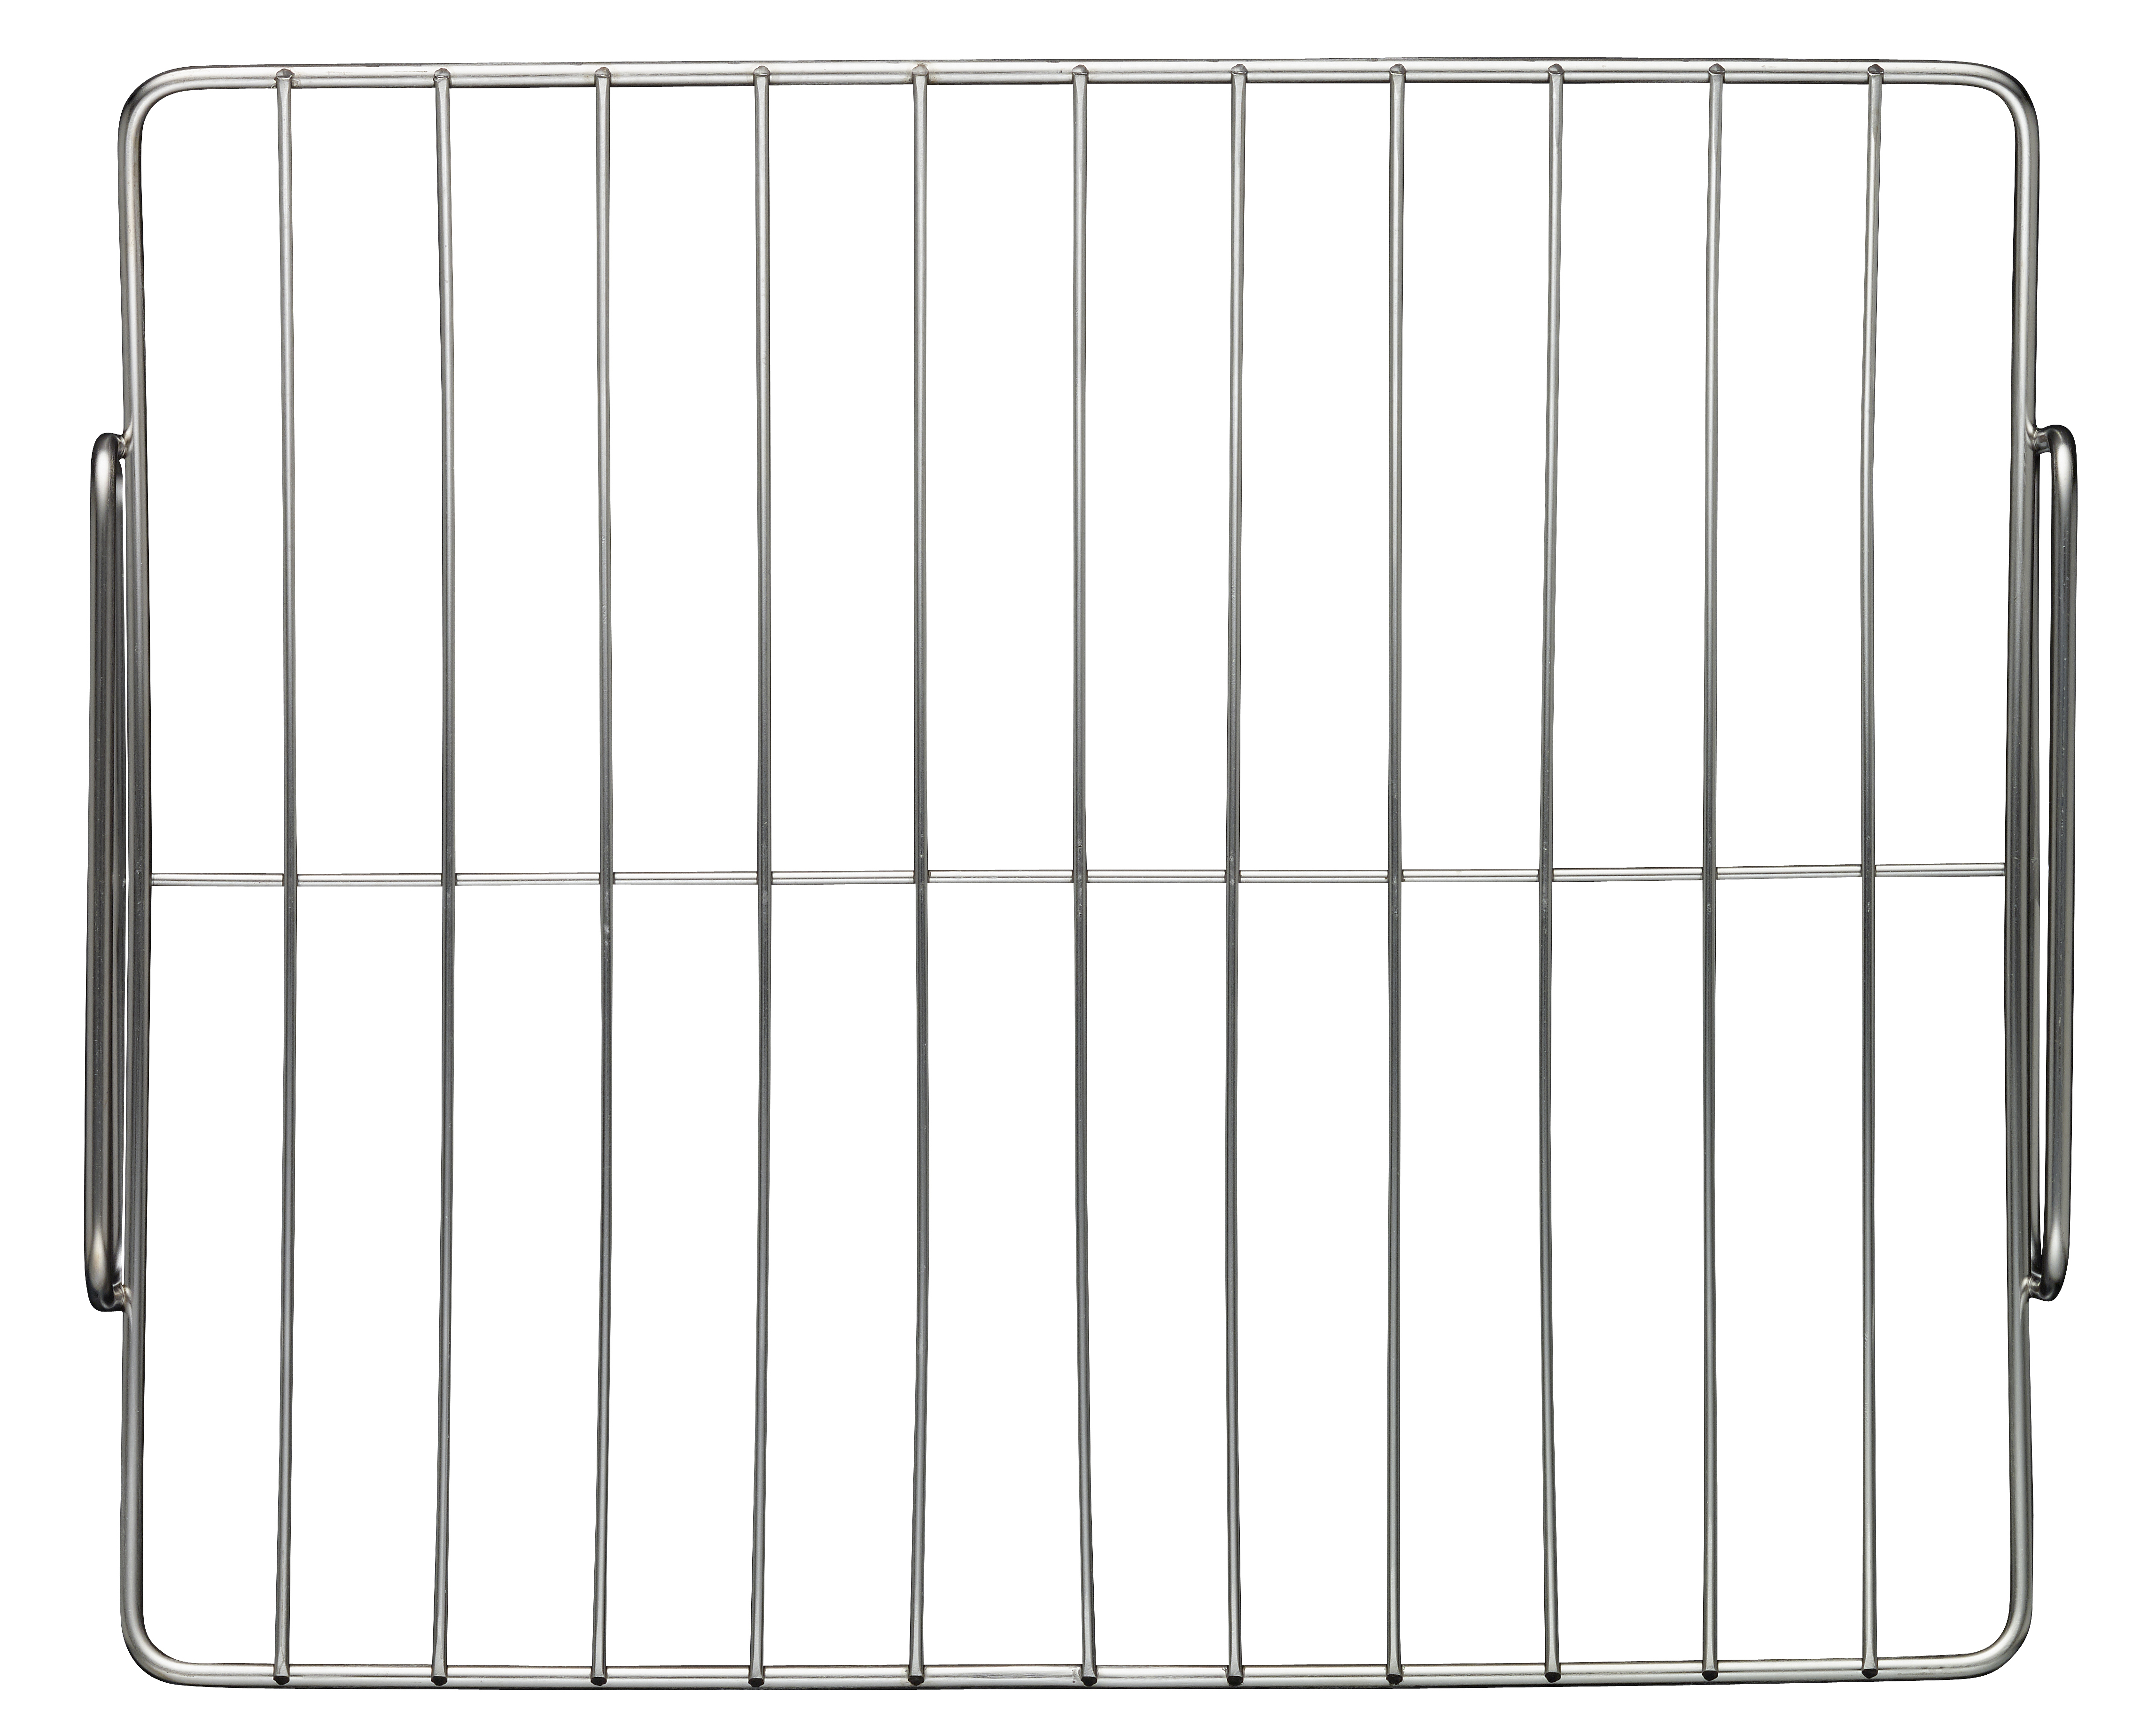 35x30cm Rack for Roaster 40321200 - Accessories, 35 x 30cm